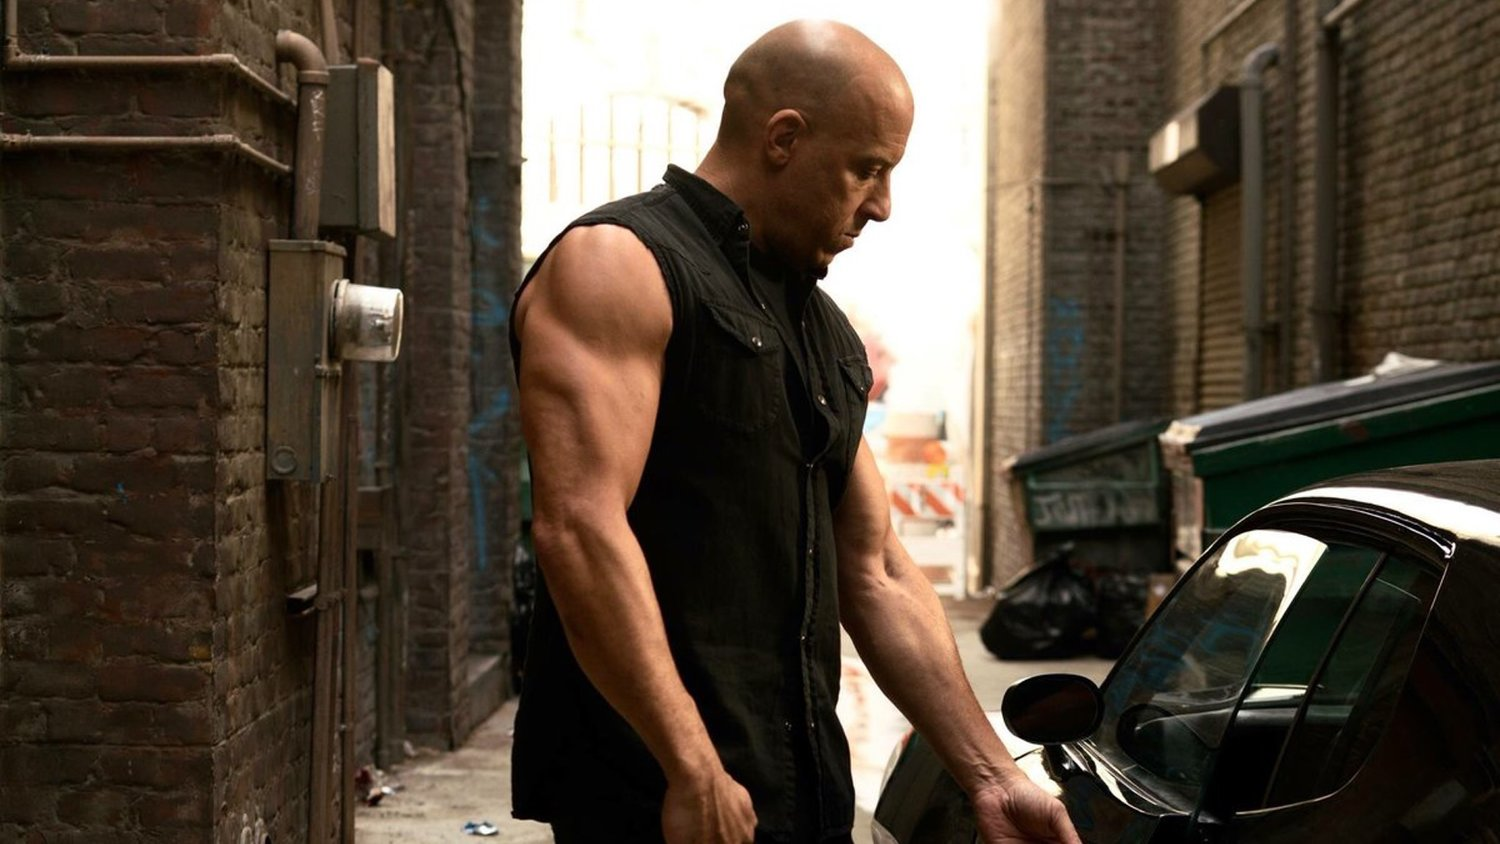 International Trailer for THE FATE OF THE FURIOUS Offers Explosive New Footage